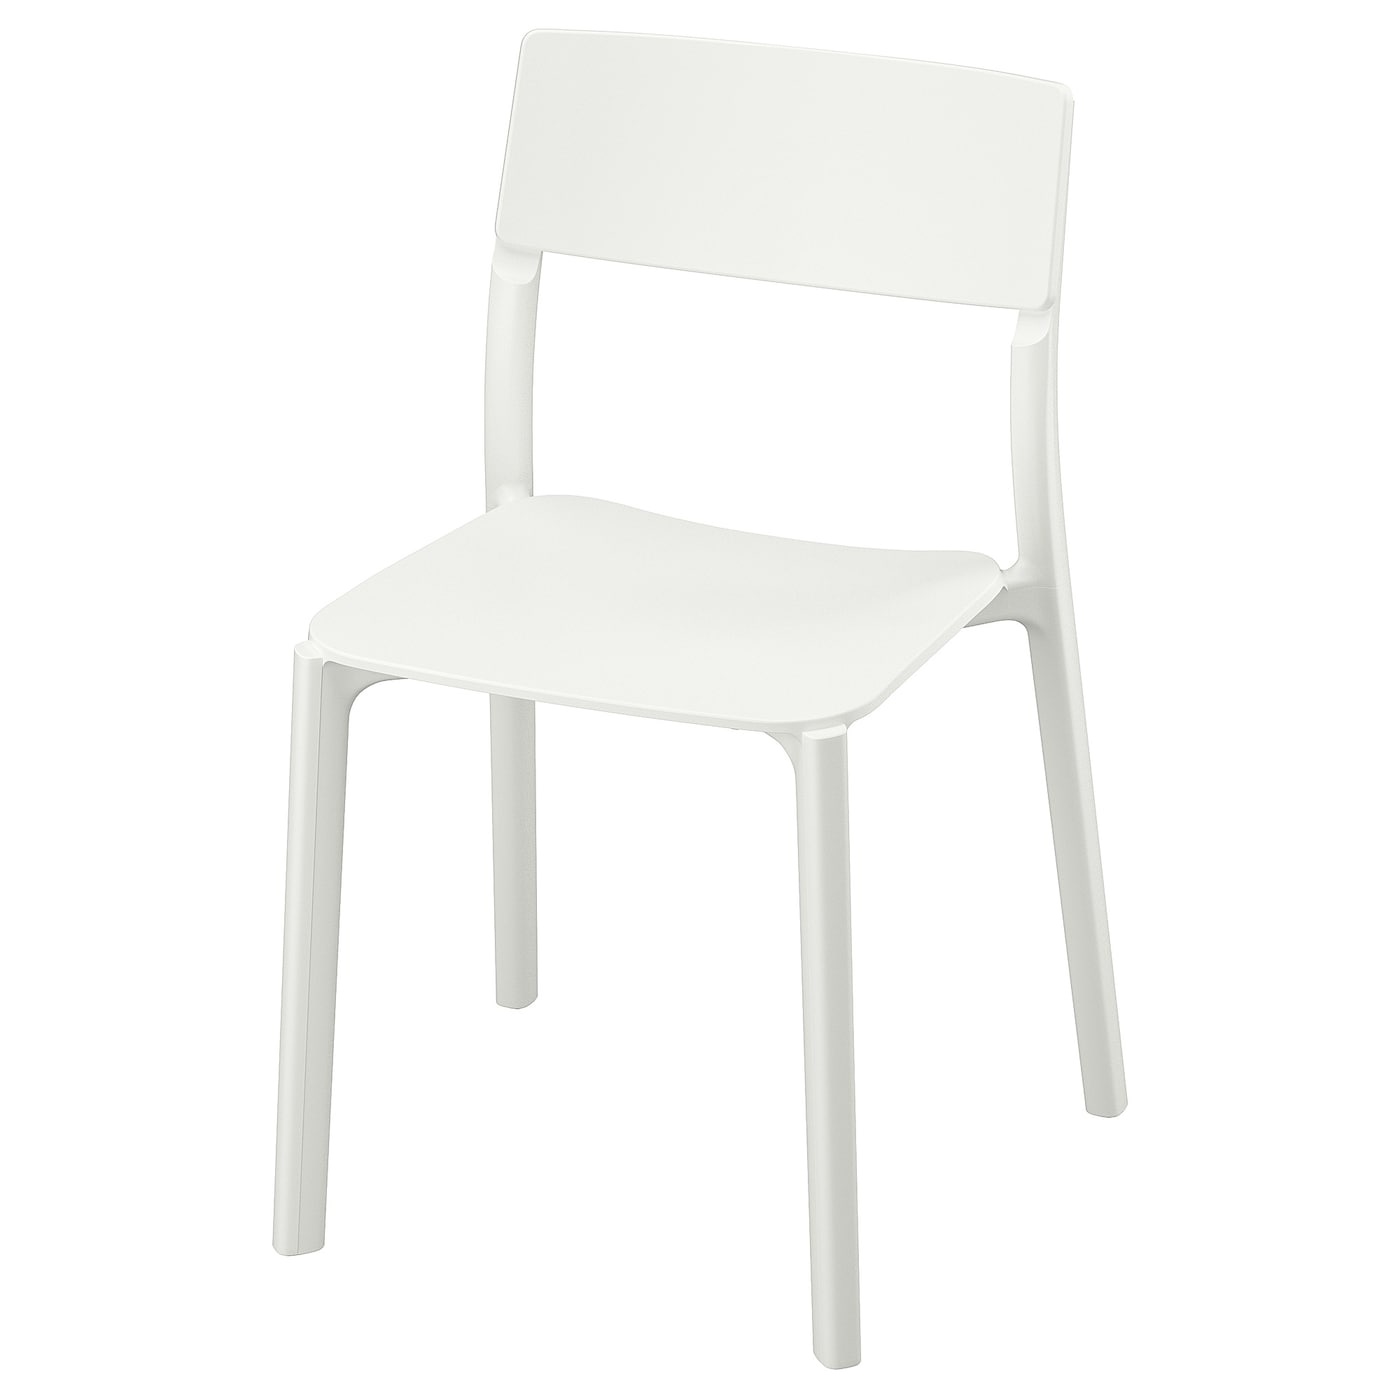 Top Image Kitchen Chair Ikea